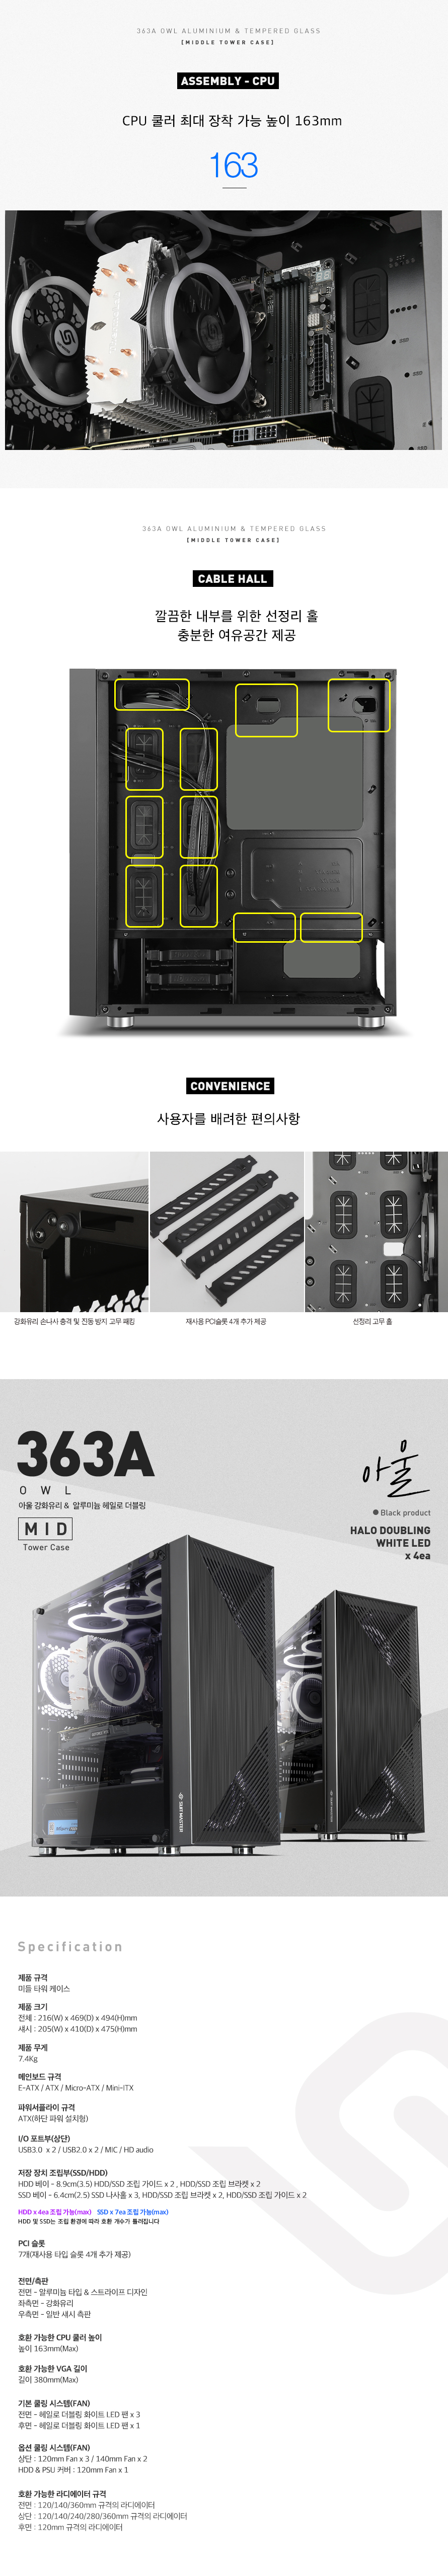 ABKO SUITMASTER 363A 아울 강화유리 DOUBLING